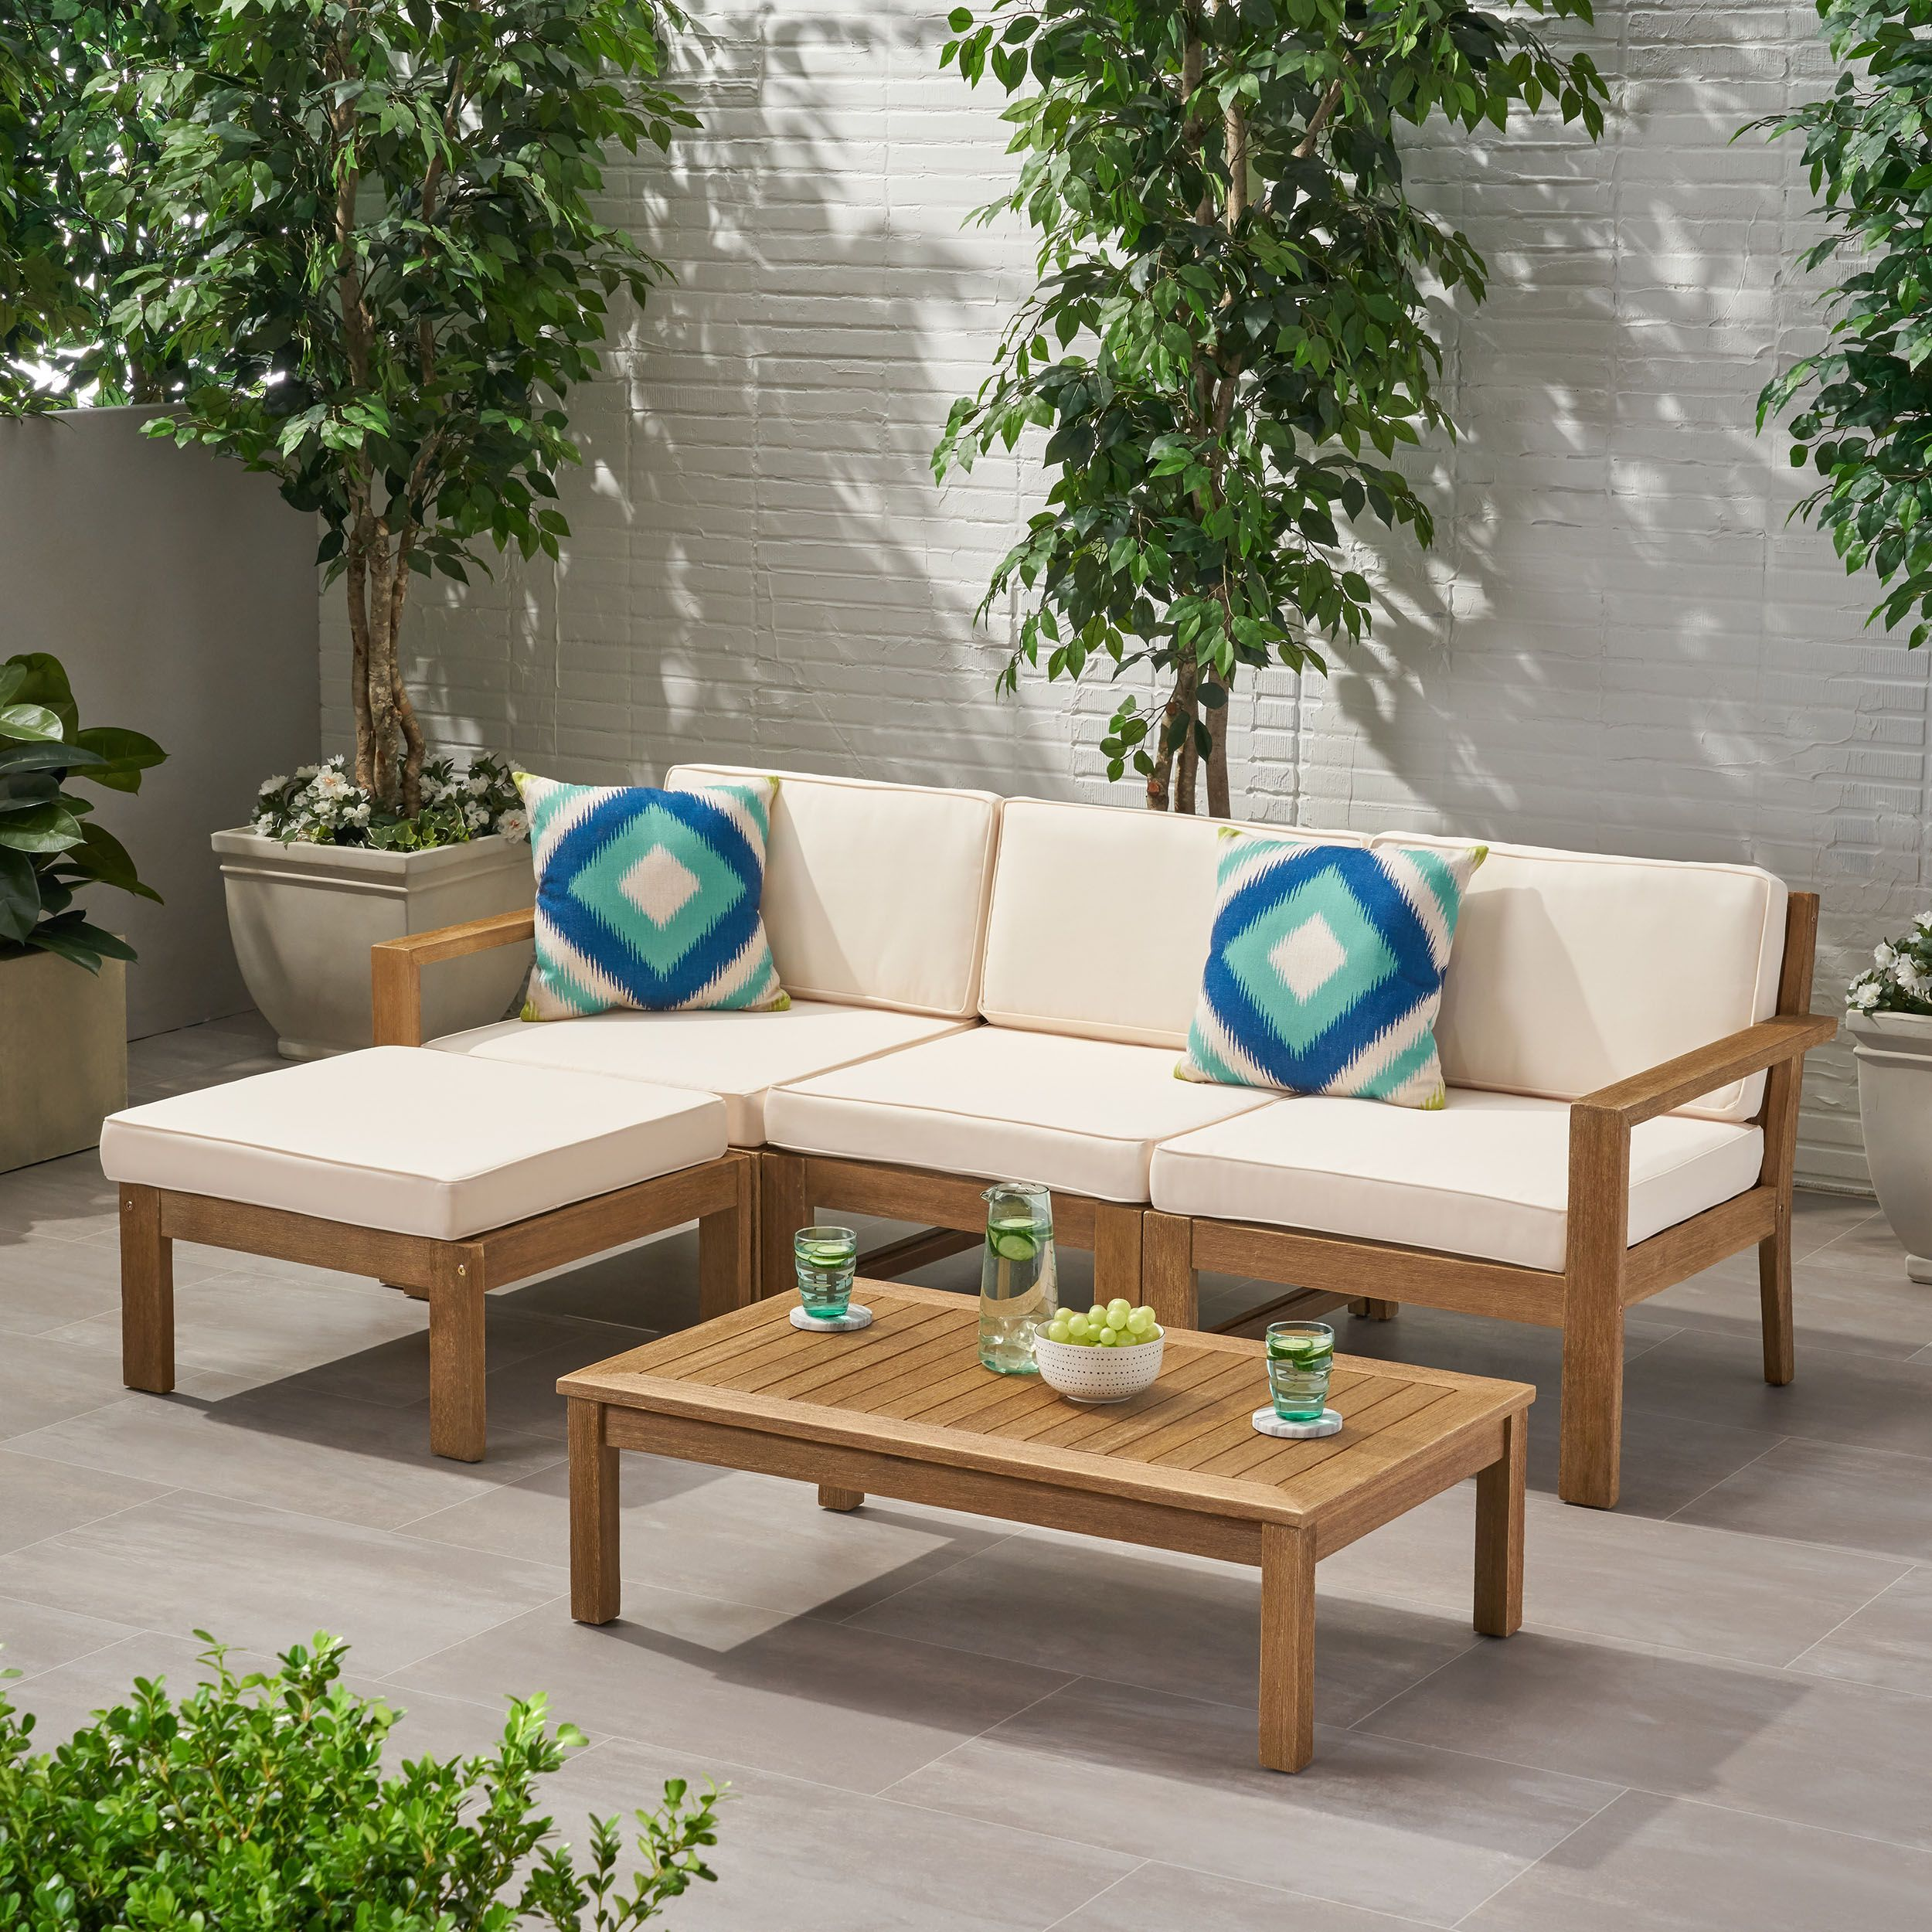 Faviola Ana Outdoor 3 Seater Acacia Wood Sofa Sectional With Cushions Light Brown And Cream Walmart Com Wood Sofa Sectional Sofa Patio Sectional